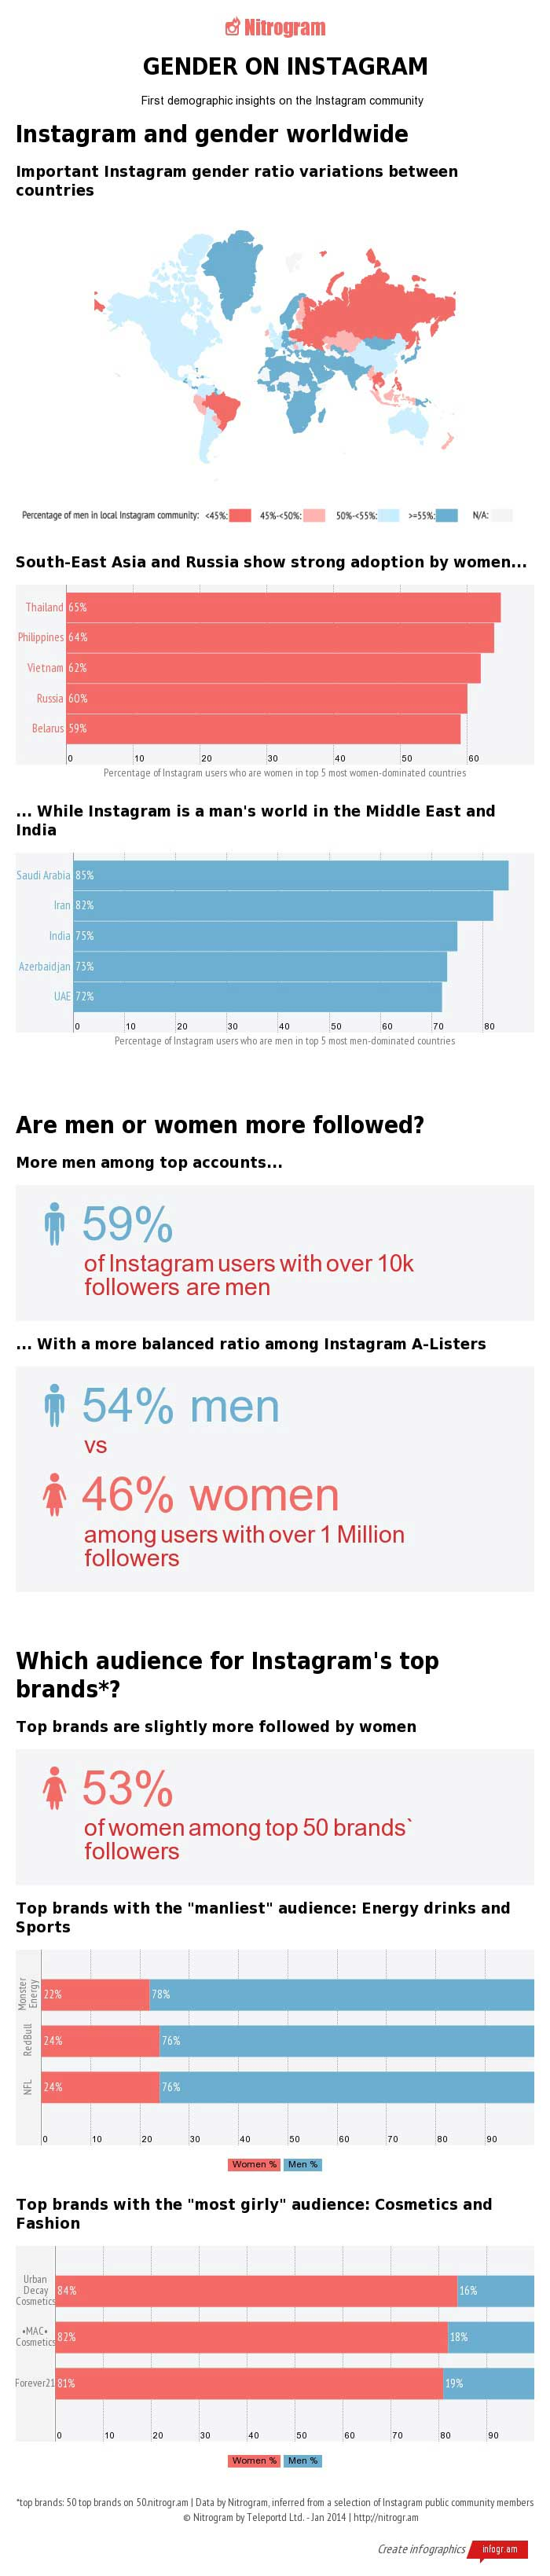 Men vs. Women on Instagram [Infographic]